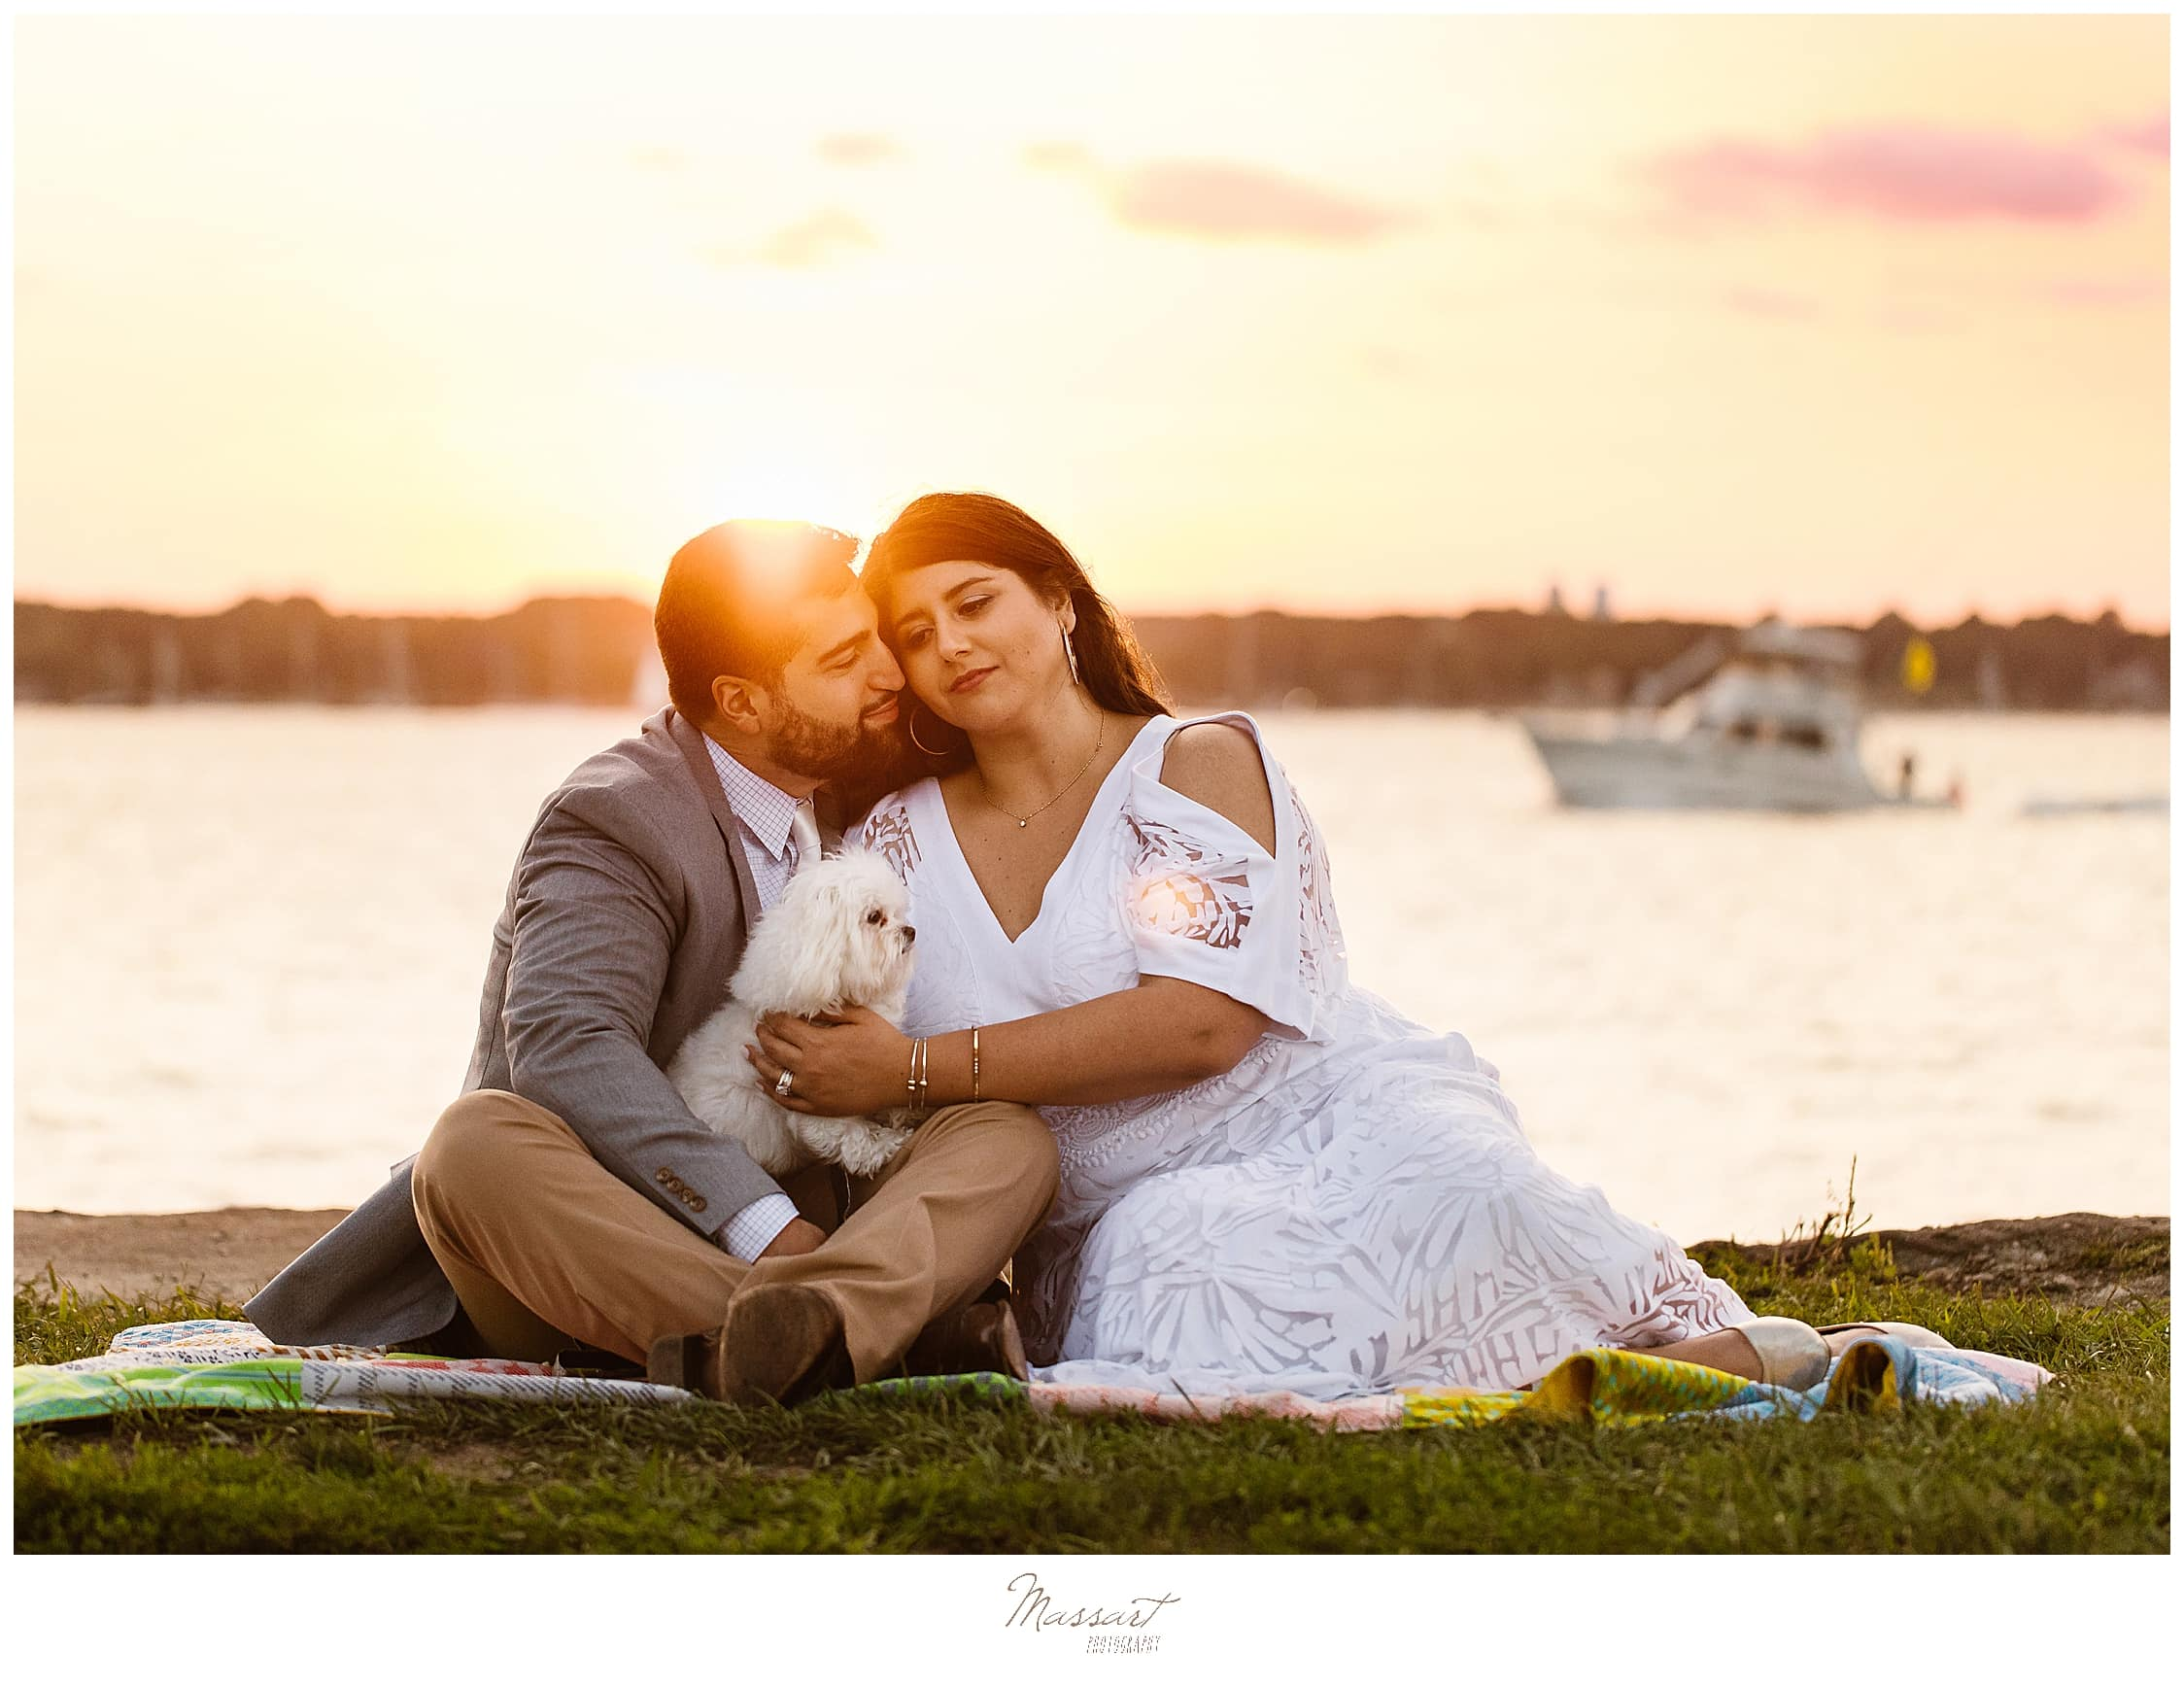 A sunset engagement session at Fort Adams in Newport, Rhode Island by Massart Photographers